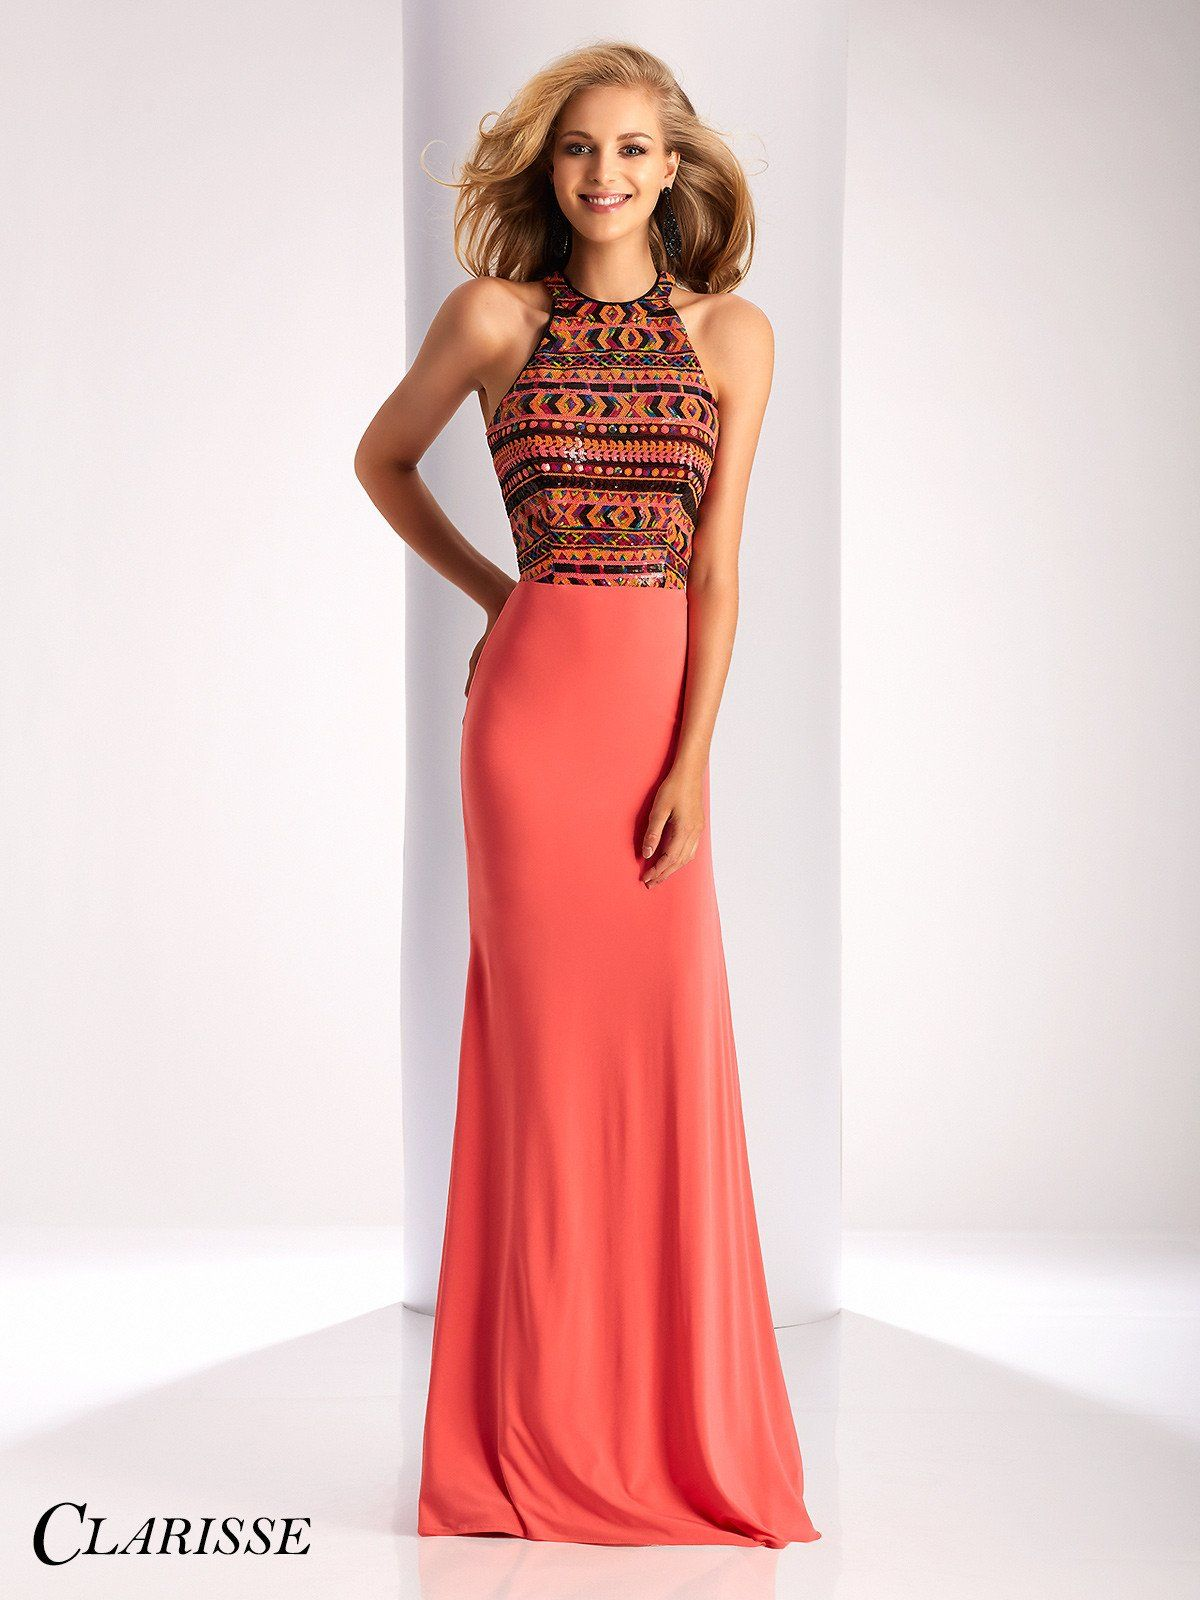 Clarisse prom coralmulti high neckline prom dress pinterest